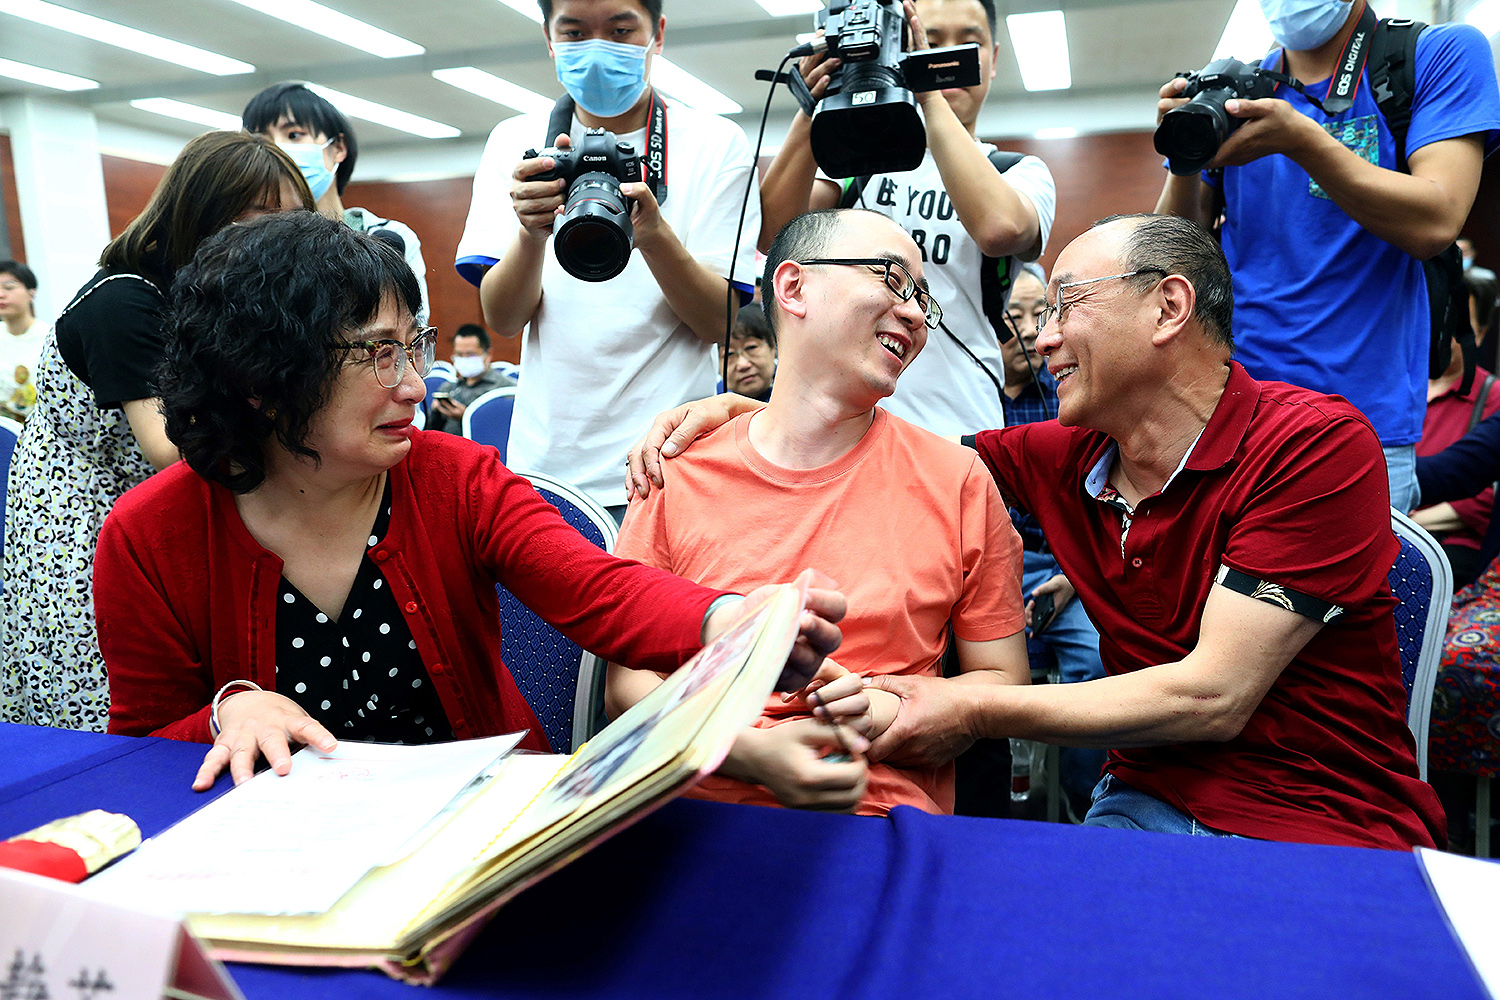 Mao Yin (center) is reunited with his mother, Li Jingzhi, and father, Mao Zhenping, in Xian, China, on May 18. Mao Yin was kidnapped as a toddler in 1988; police used facial recognition technology to track him down. STR/AFP via Getty Images